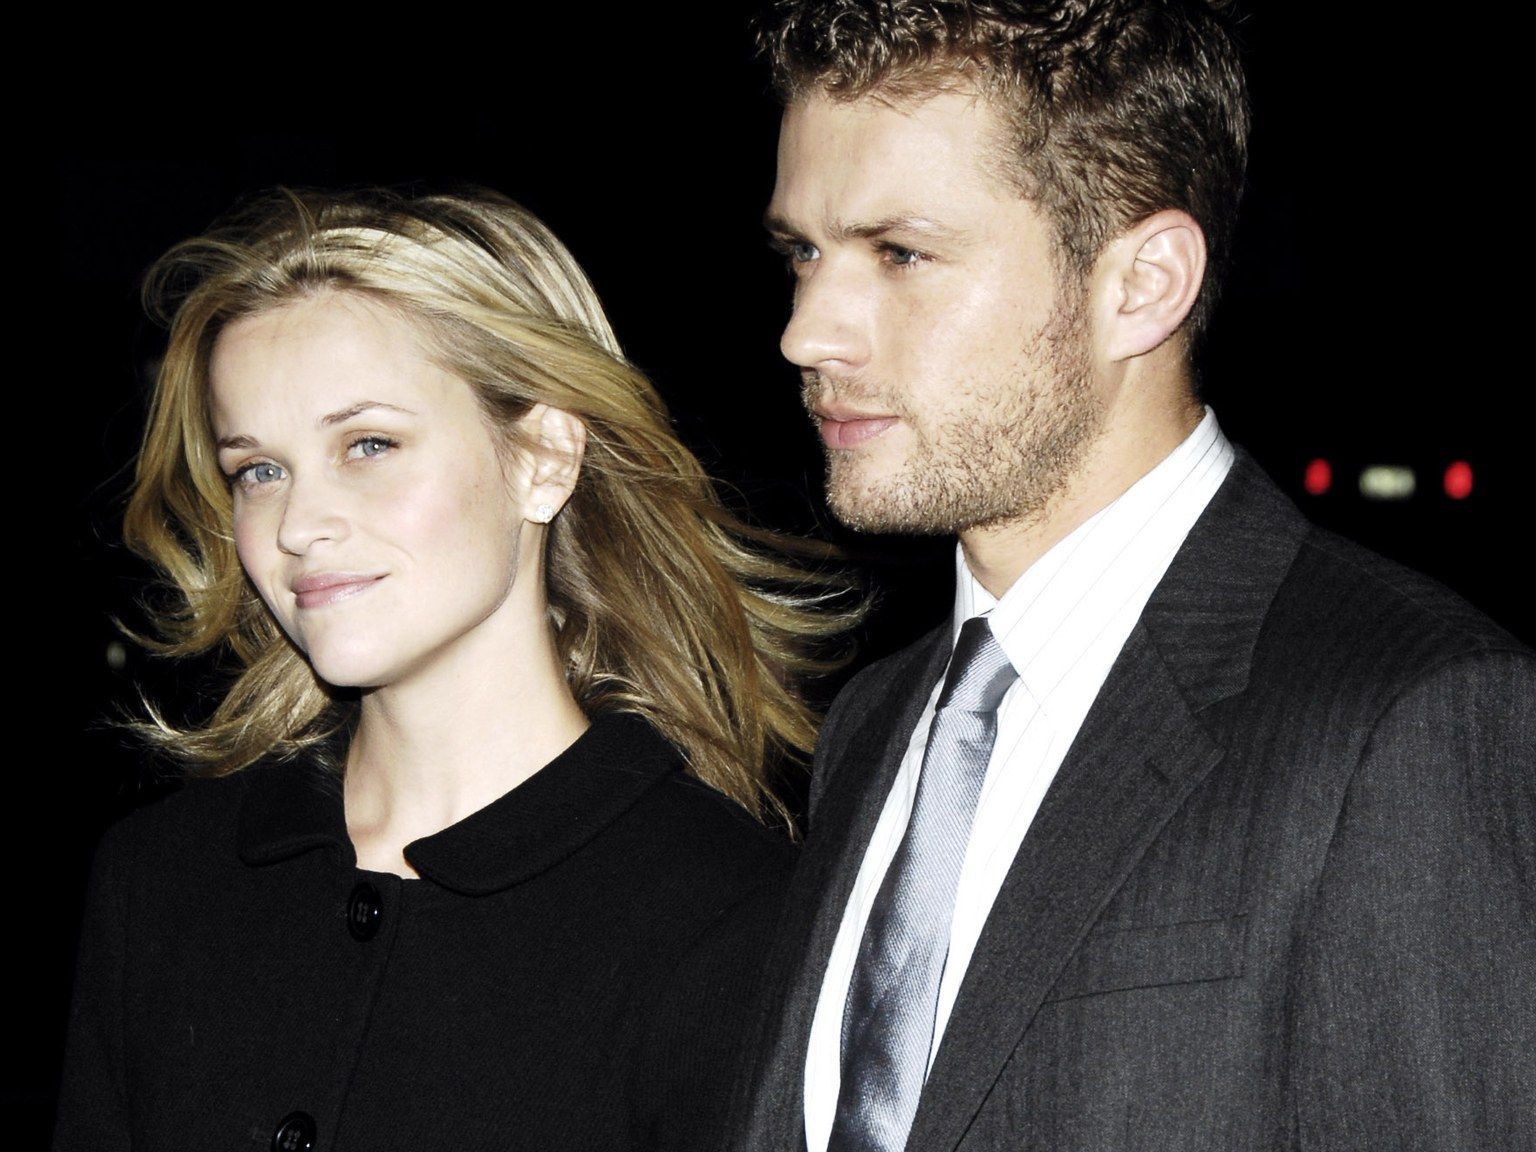 "reese witherspoon and Ryan Phillippe ""width ="" 1536 ""height ="" 1152 ""srcset ="" https://www.top5.com/wp-content/uploads/ 2013 / 07 / reese-witherspoon-and-ryan-phillippe-.jpg 1536w, https://www.top5.com/wp-content/uploads/2013/07/reese-witherspoon-and-ryan-phillippe - 300x225.jpg 300w, https://www.top5.com/wp-content/uploads/2013/07/reese-witherspoon-and-ryan-phillippe--768x576.jpg 768w, https://www.top5.com/wp- content / uploads / 2013/07 / reese-witherspoon-and-ryan-phillippe - 1024x768.jpg 1024w ""Sizes ="" (maximum width: 1536px) 100vw, 1536px"